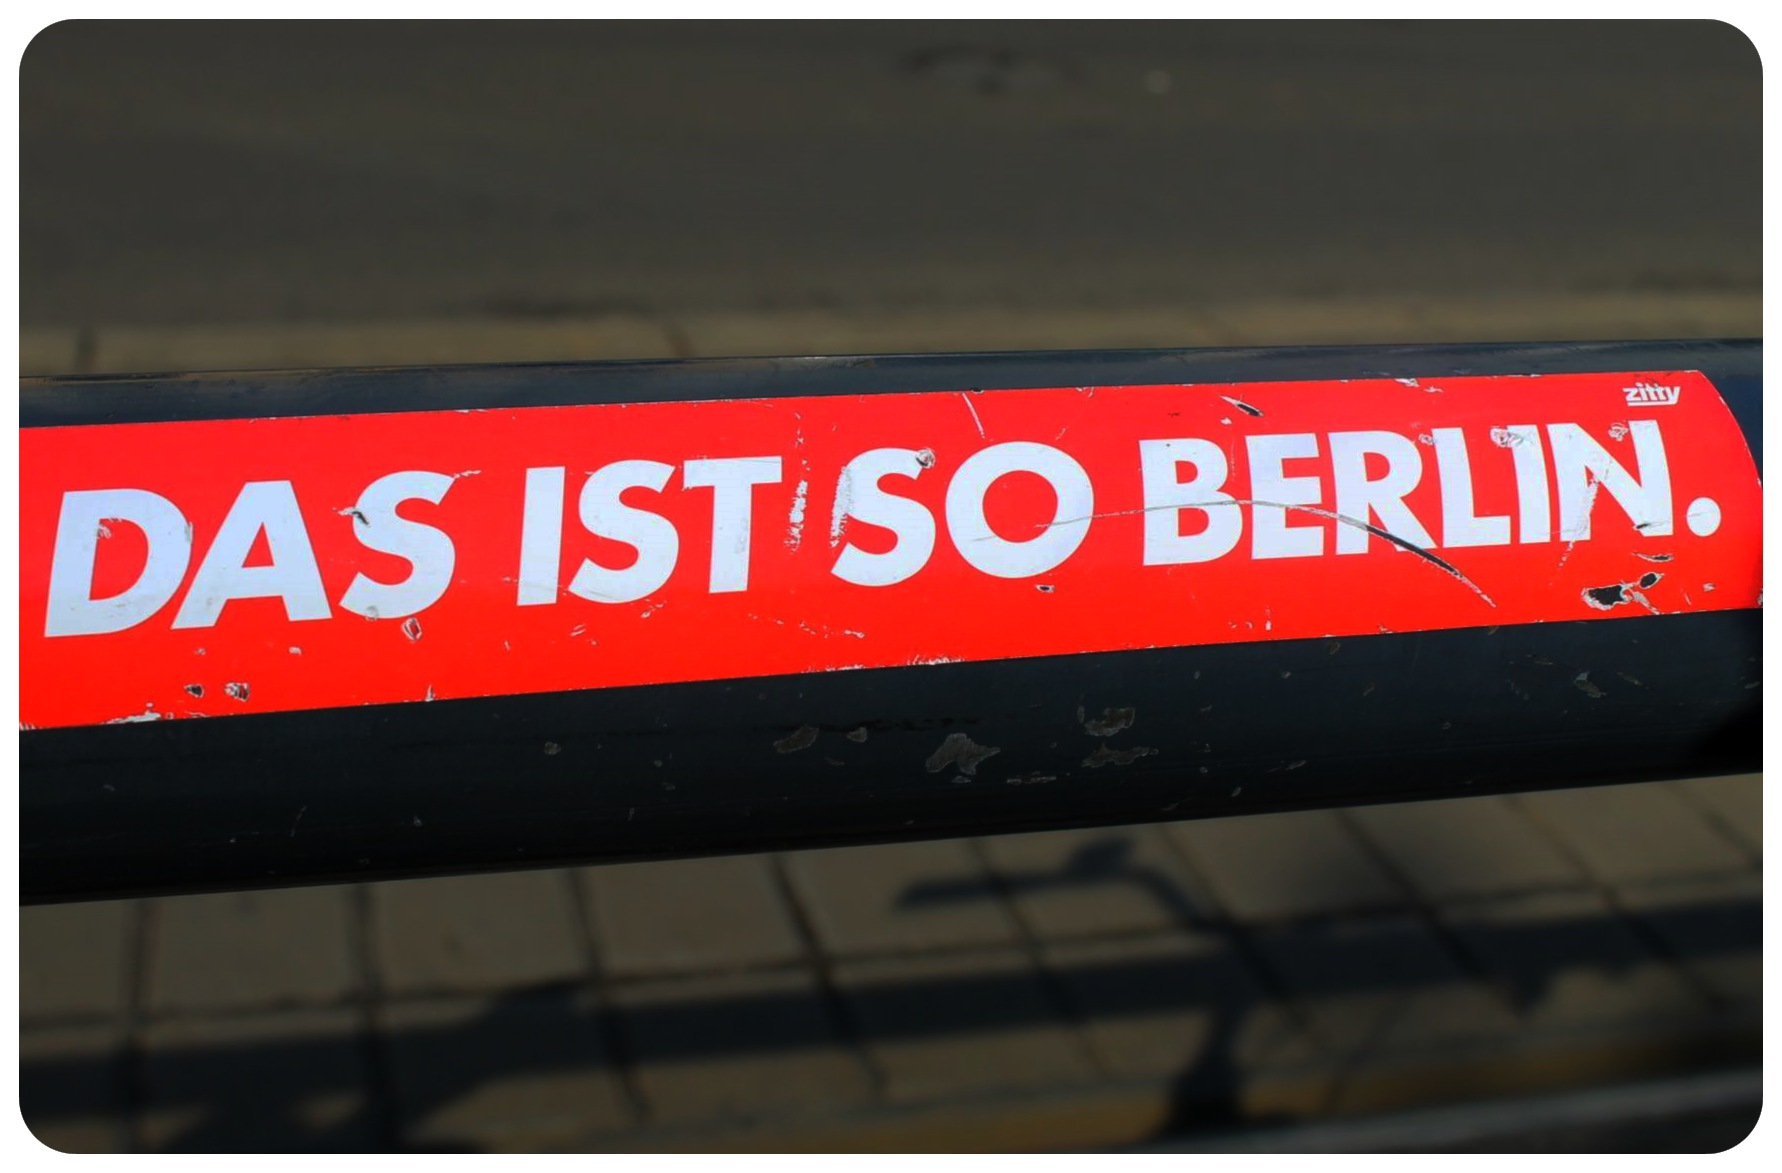 Berlin surprising facts